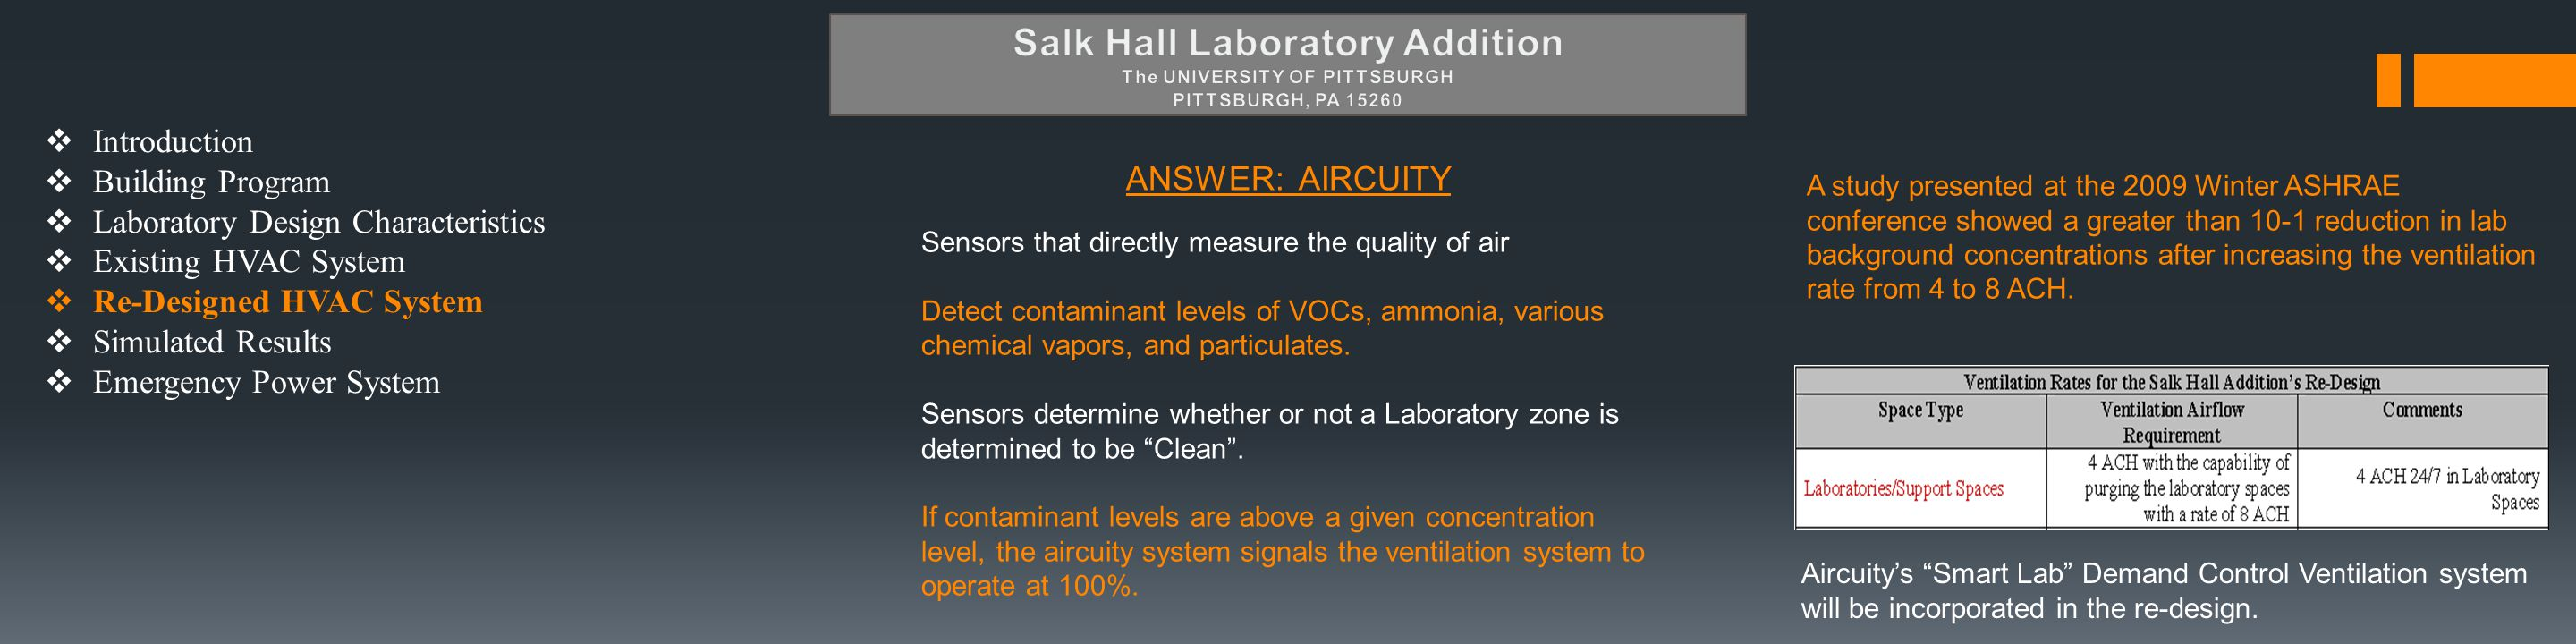  Introduction  Building Program  Laboratory Design Characteristics  Existing HVAC System  Re-Designed HVAC System  Simulated Results  Emergency Power System ANSWER: AIRCUITY Sensors that directly measure the quality of air Detect contaminant levels of VOCs, ammonia, various chemical vapors, and particulates.